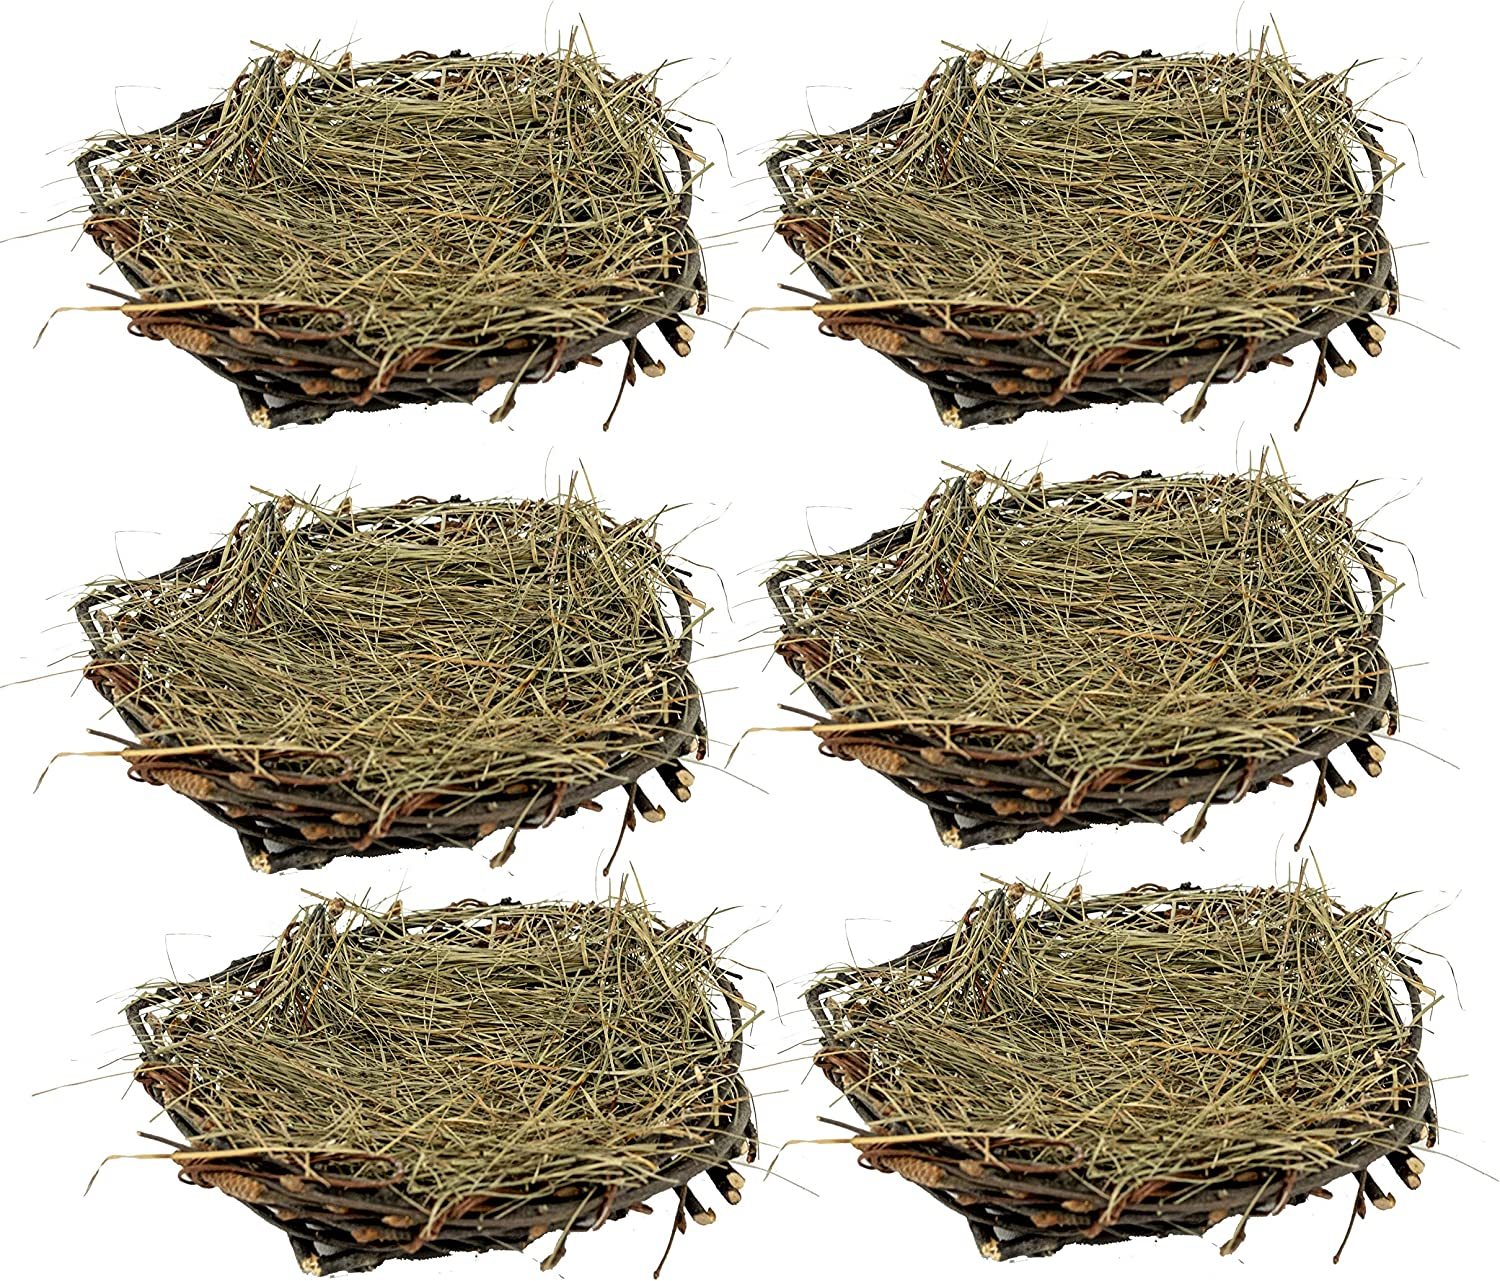 Vita Domi 4 inch Twig and Grass Bird Nest 6 Pack Natural Craft and Decoration